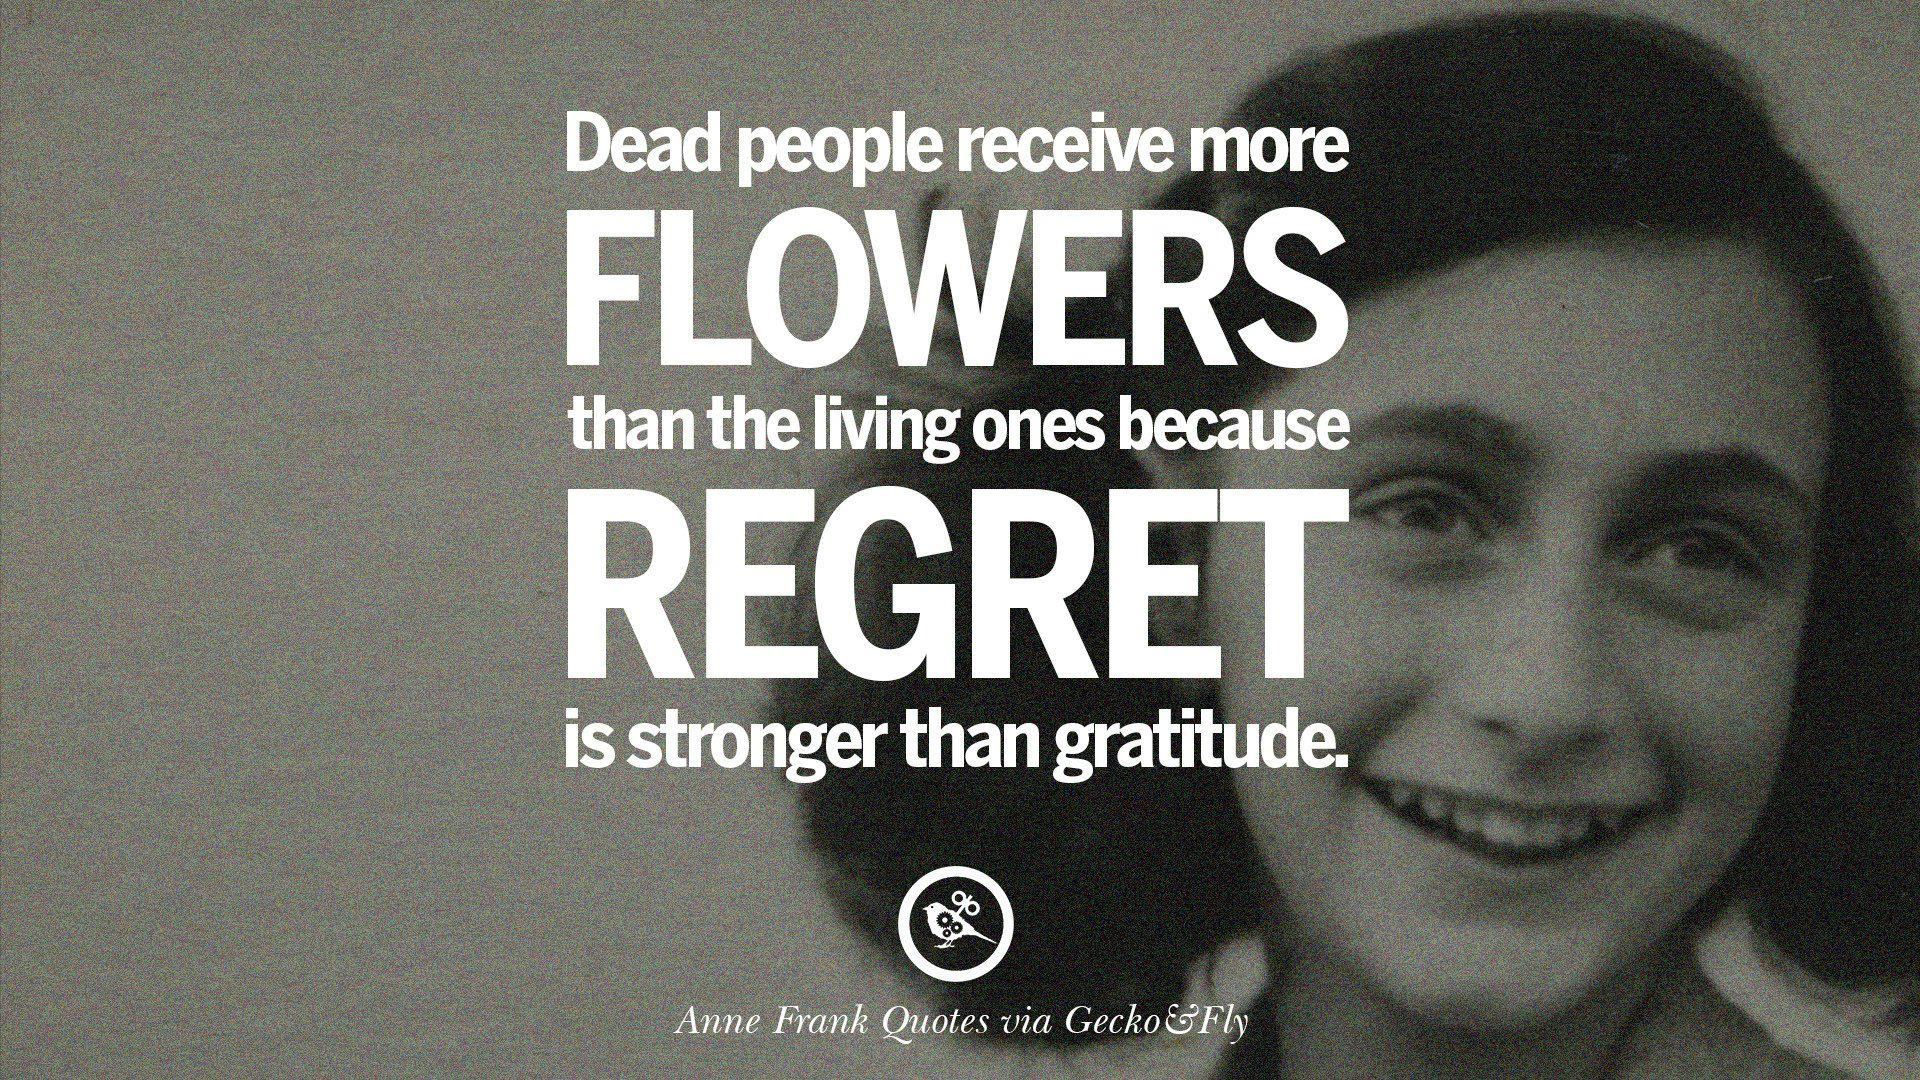 12 Quotes By Anne Frank On Death, Love, And Humanities